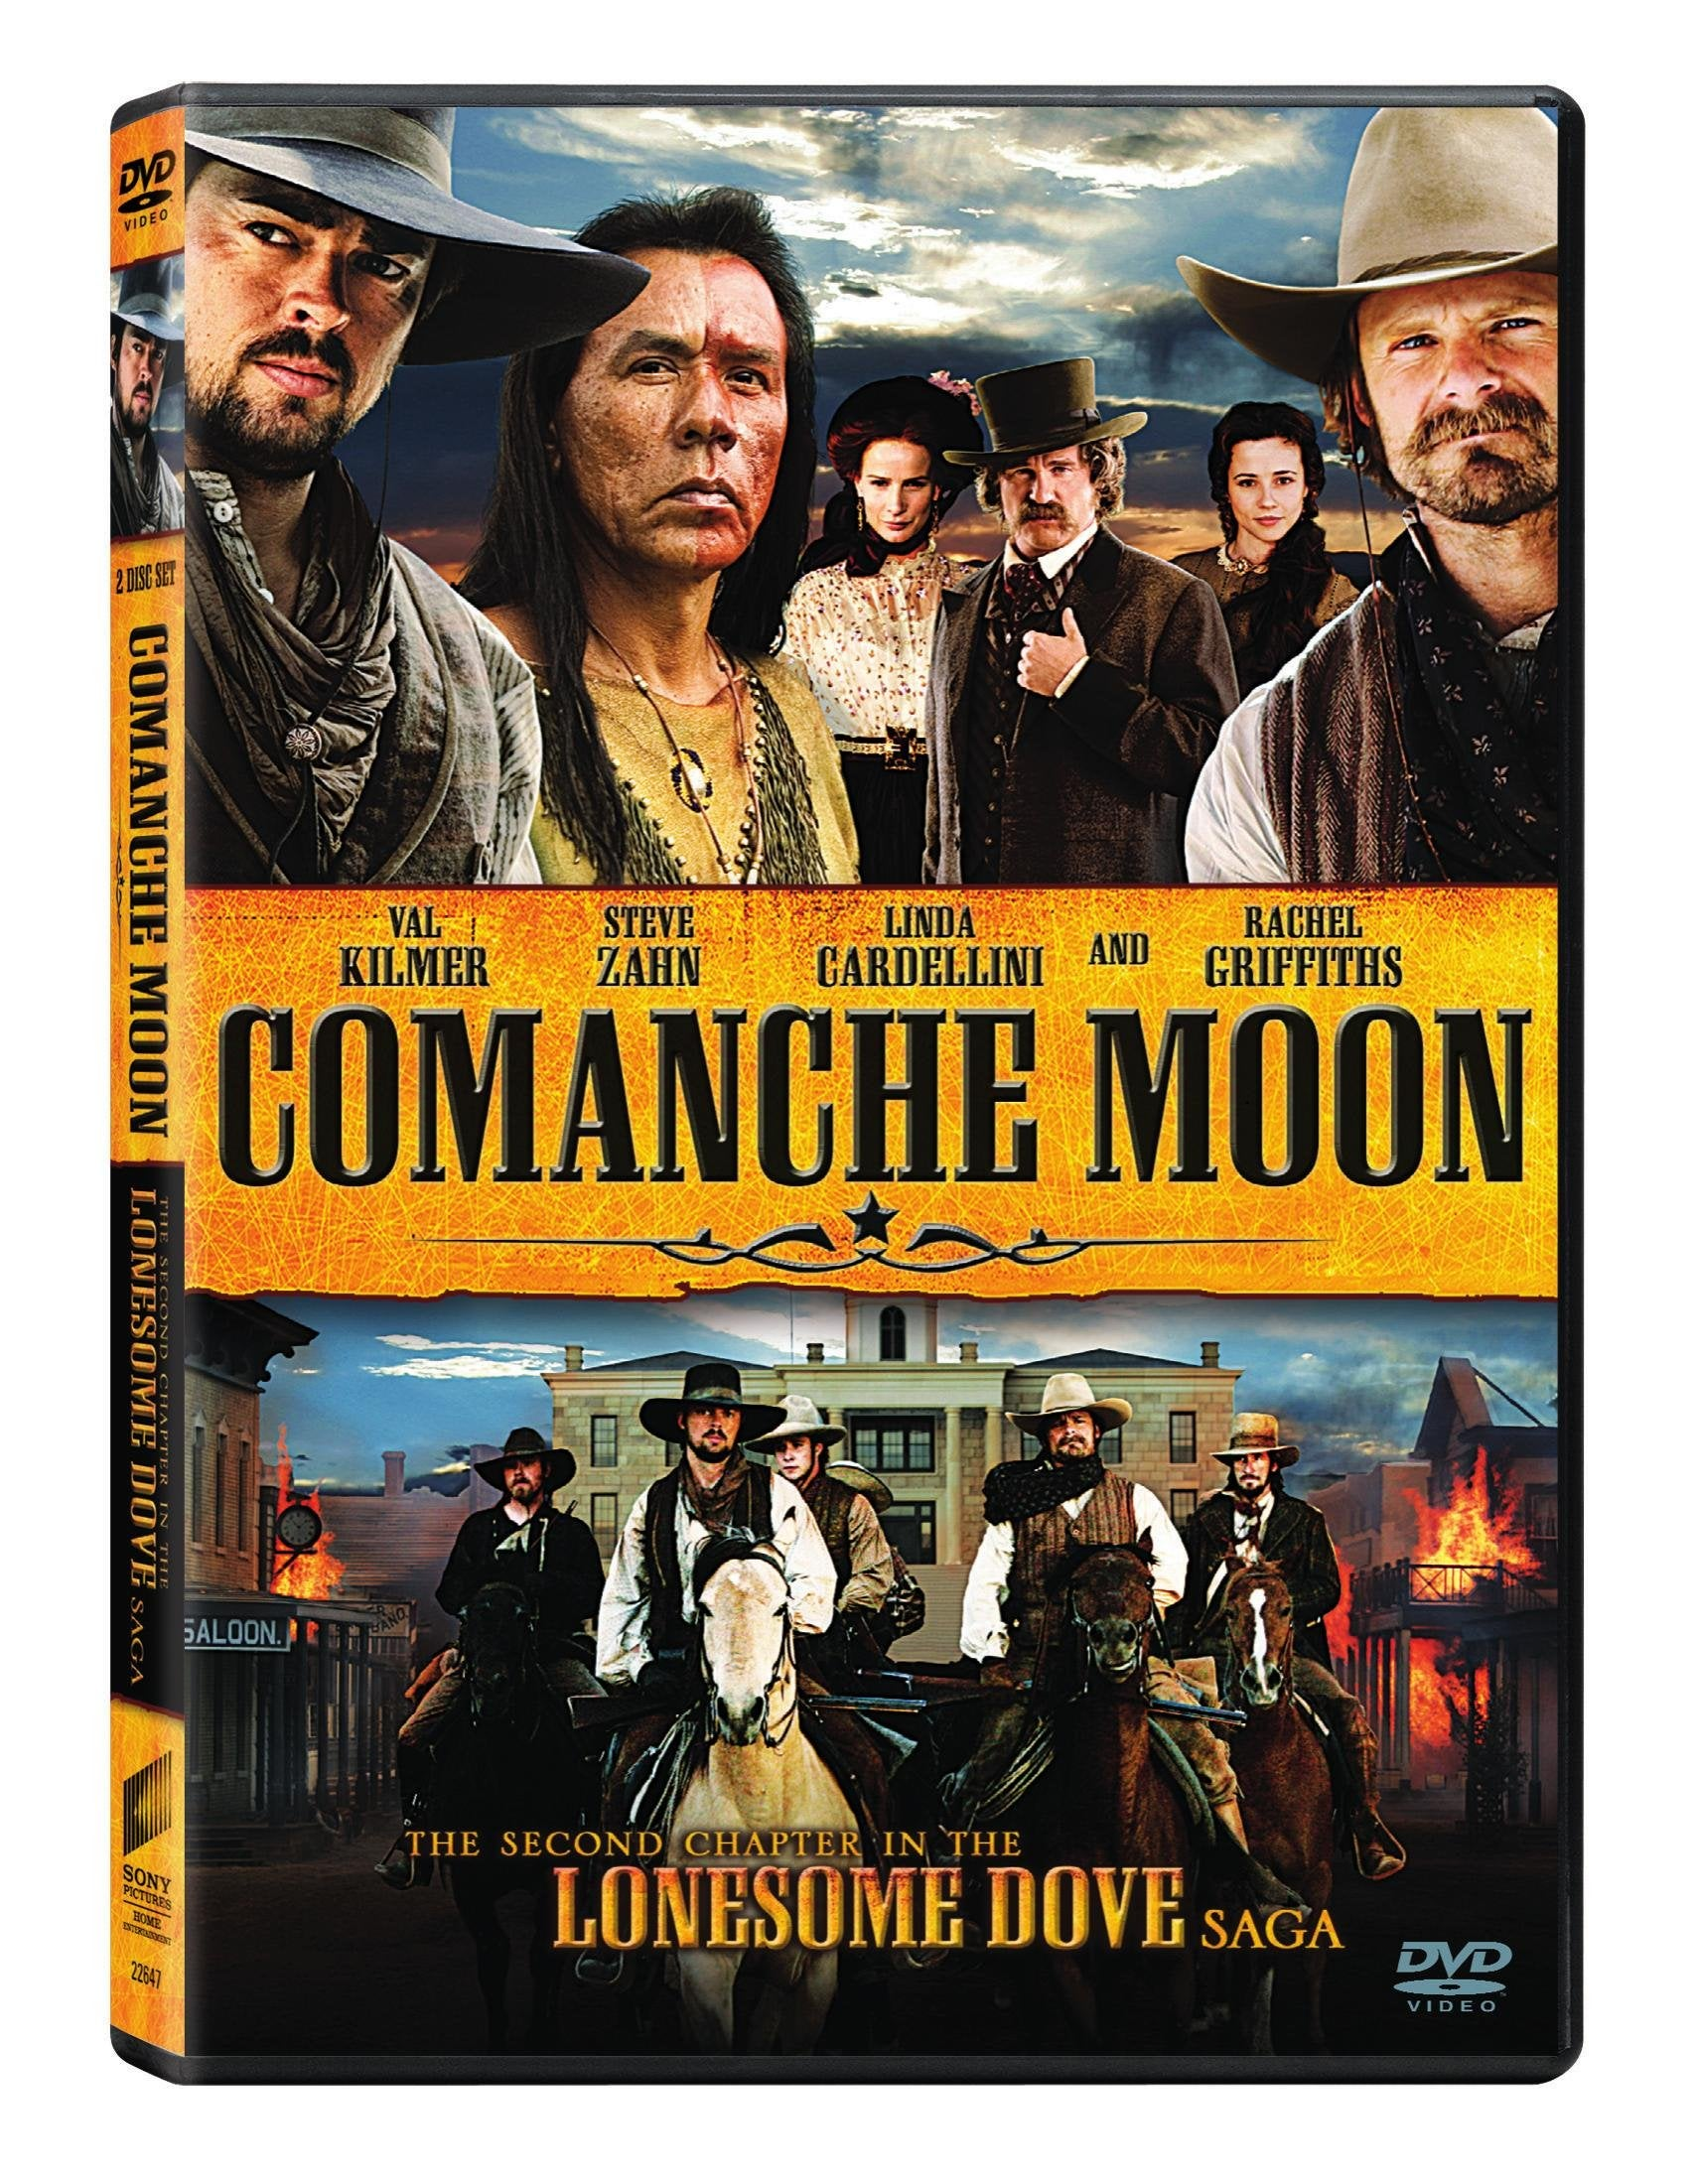 Comanche Moon: The Second Chapter in the Lonesome Dove Saga (DVD)